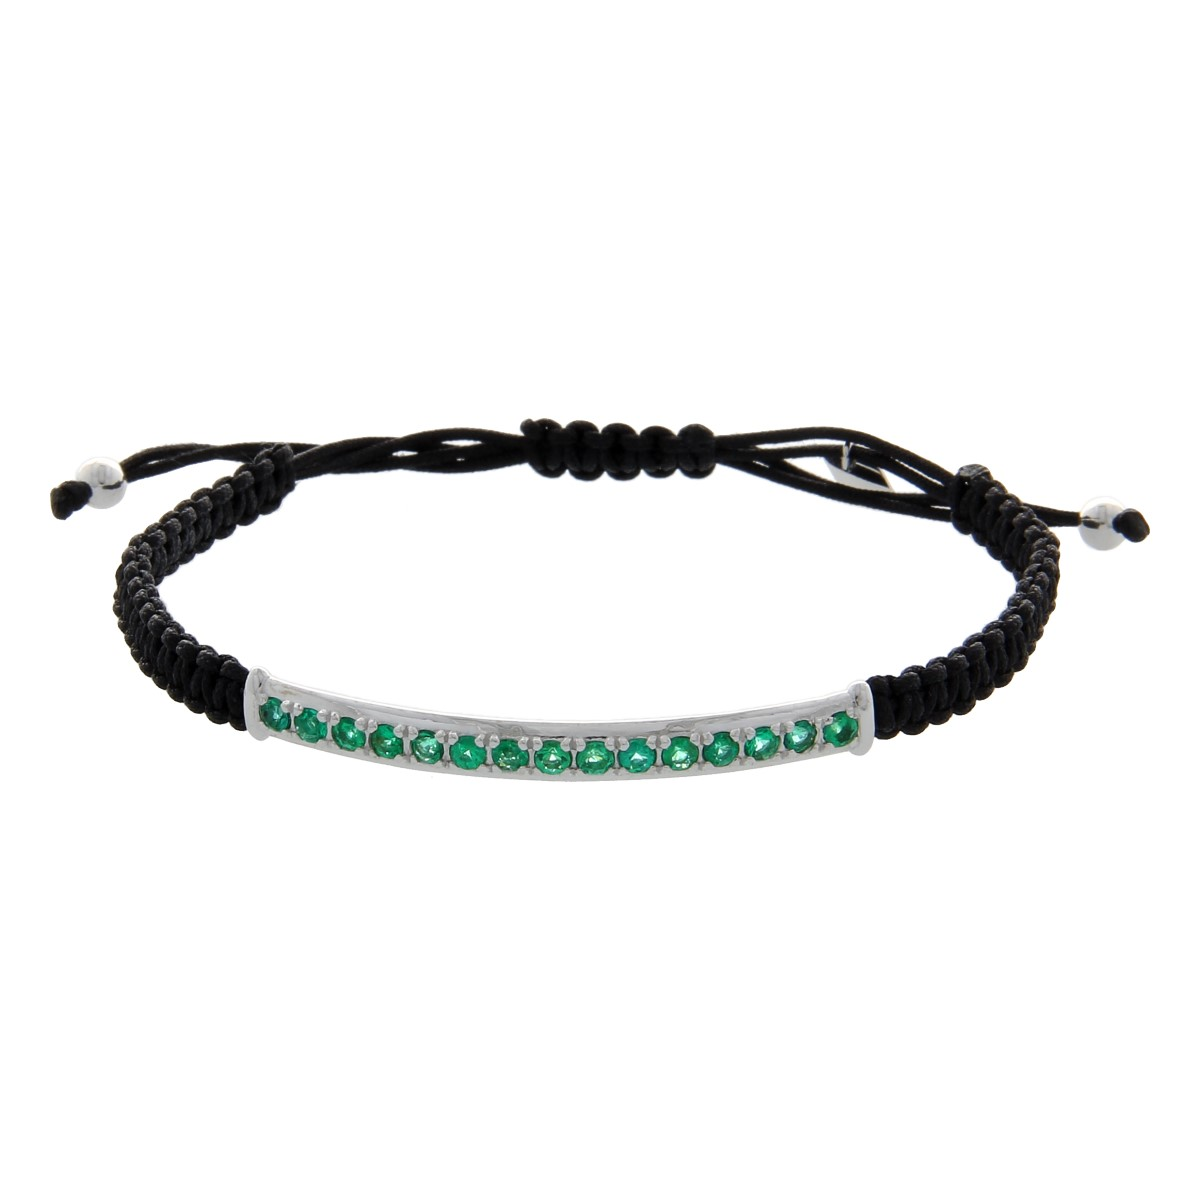 Black String Macrame Luxury Bracelet with White Gold and Emeralds